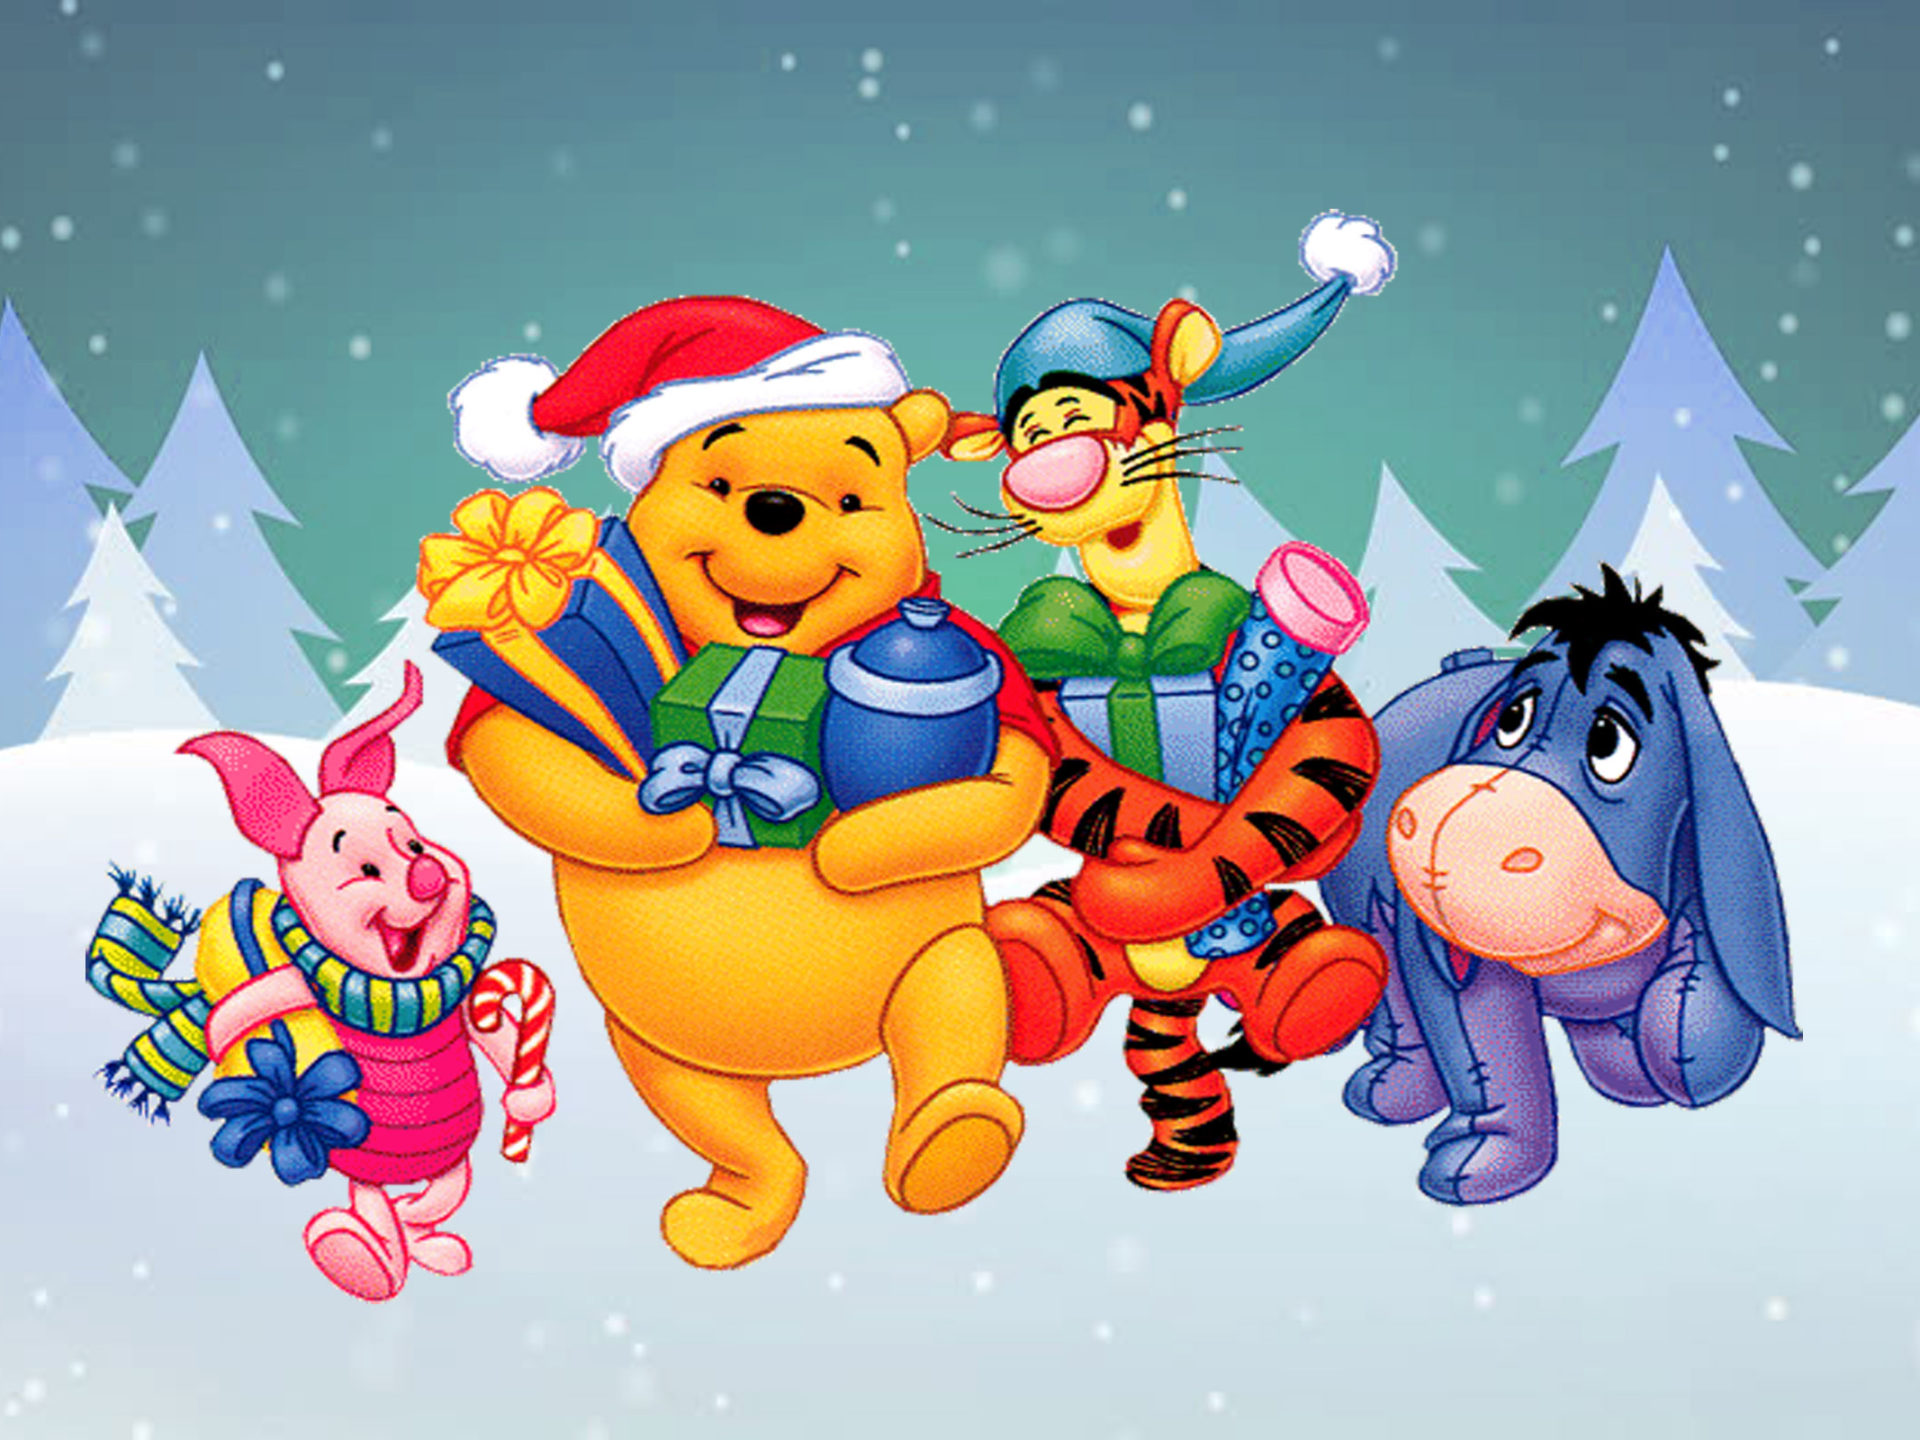 Winnie The Pooh And Friends Cartoon Christmas Gifts Hd